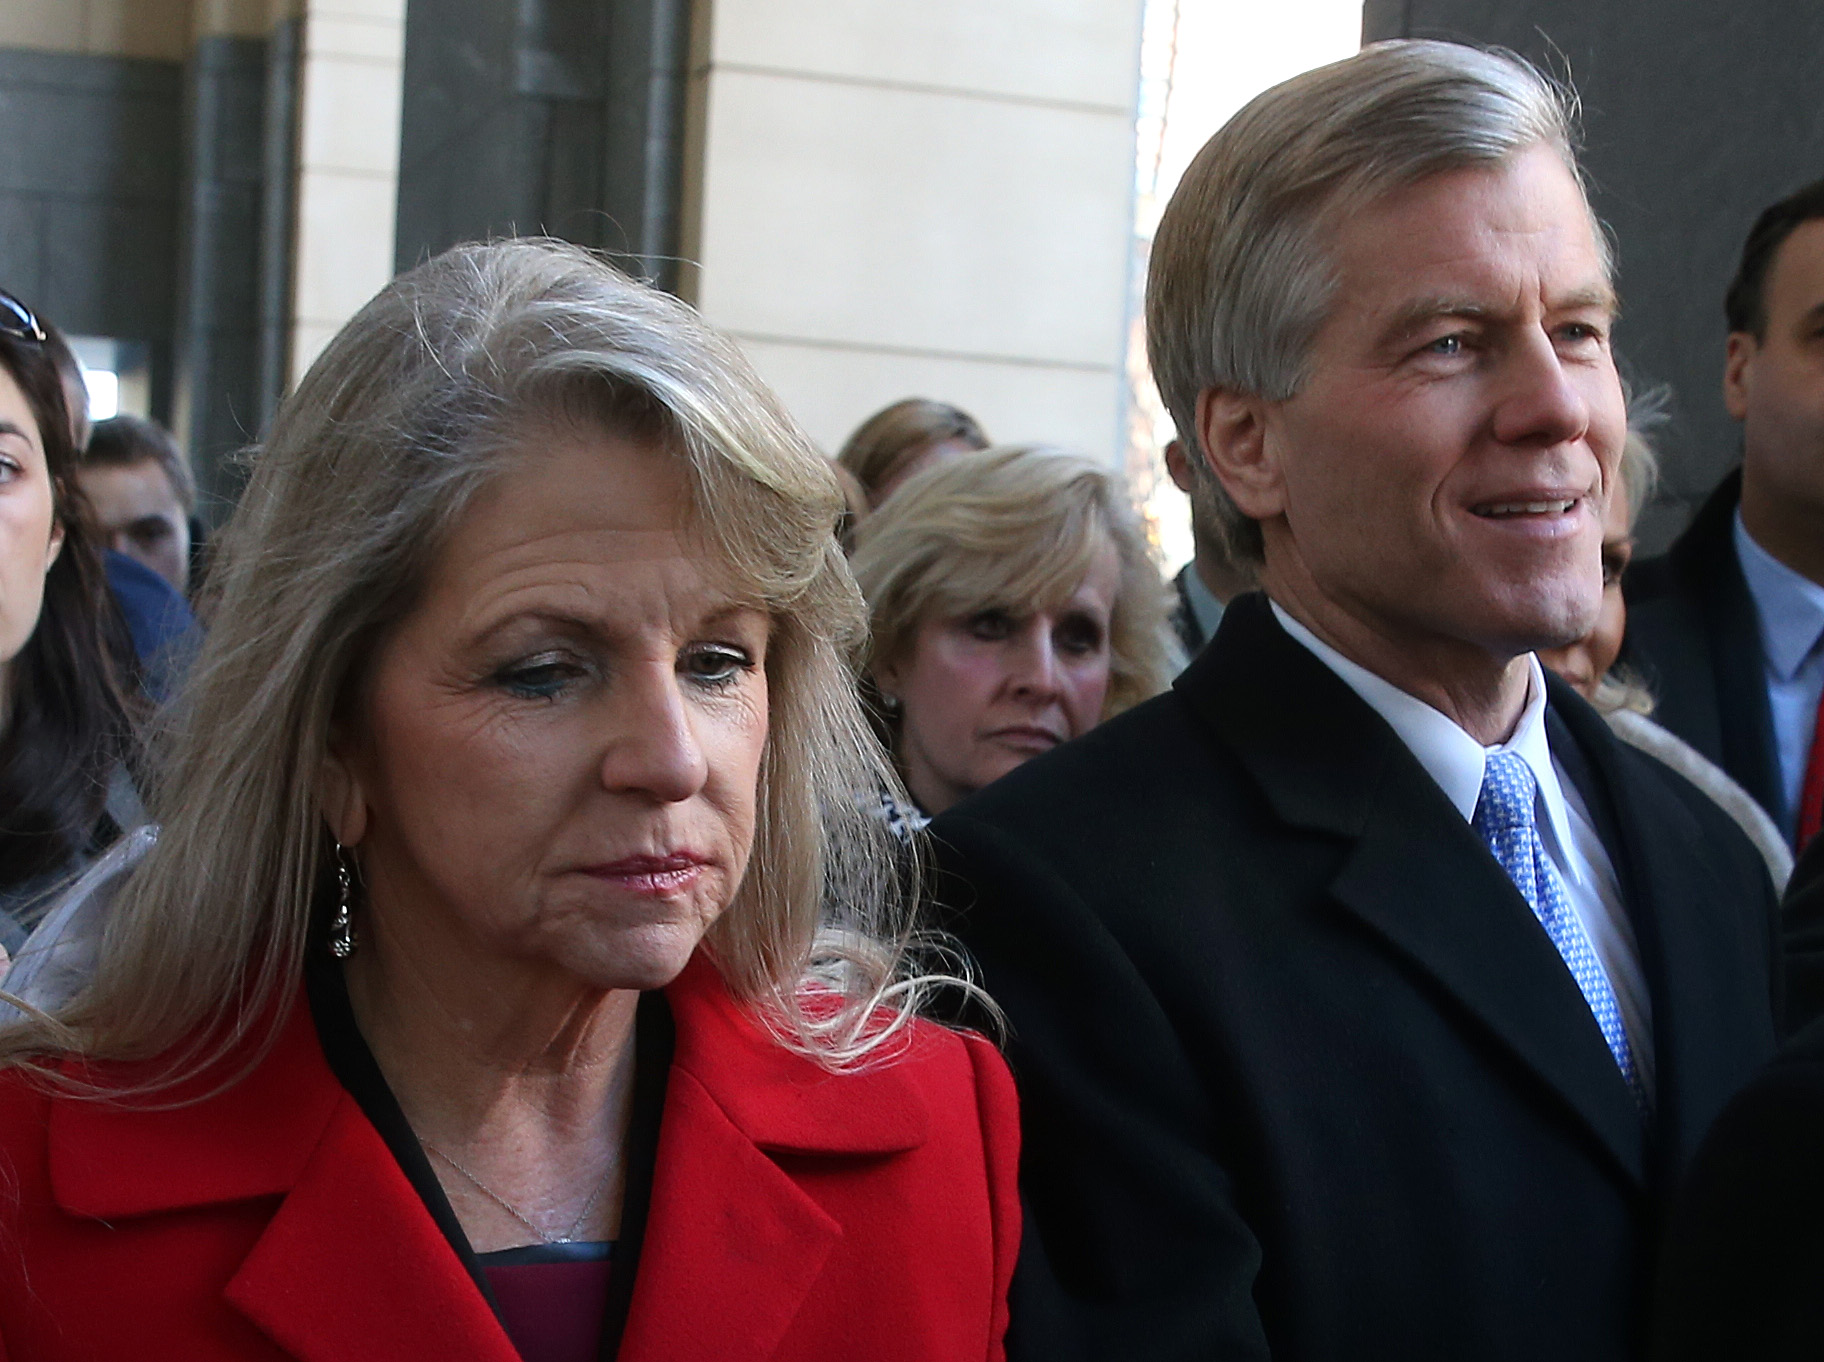 Former Virginia governor Bob McDonnell and his wife Maureen leave the court in Richmond, Va., on Jan. 24, 2014